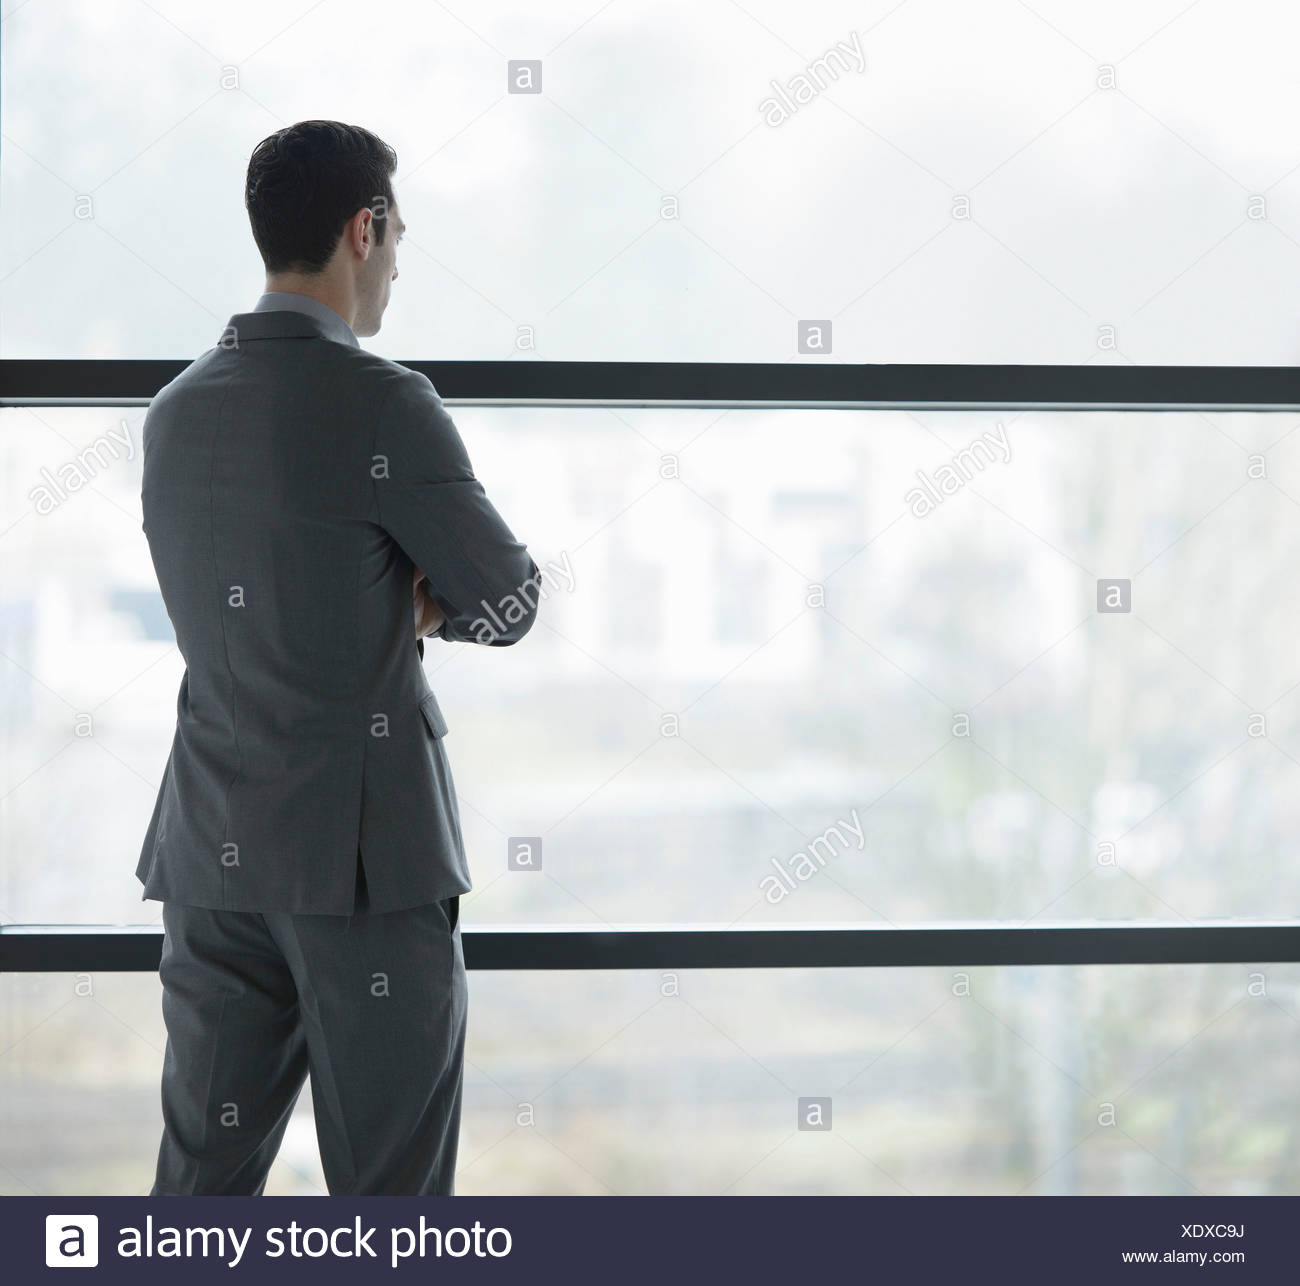 Businessman looking through window - Stock Image